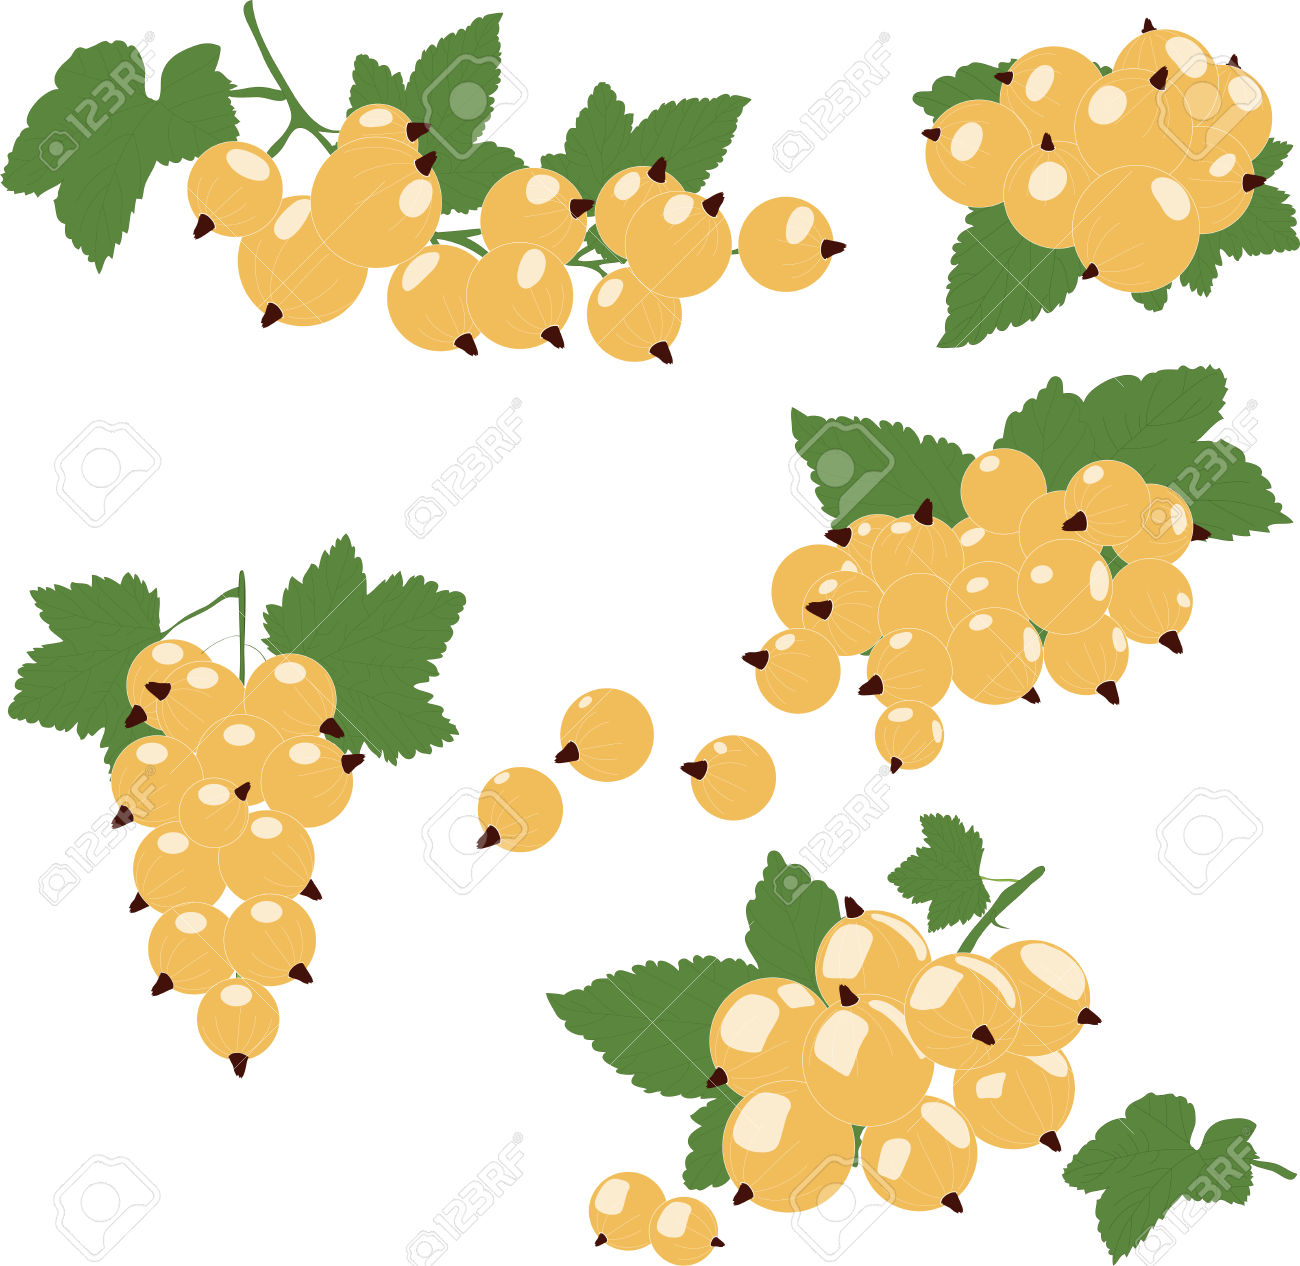 White Currant Cluster With Green Leaves. Vector Illustration.